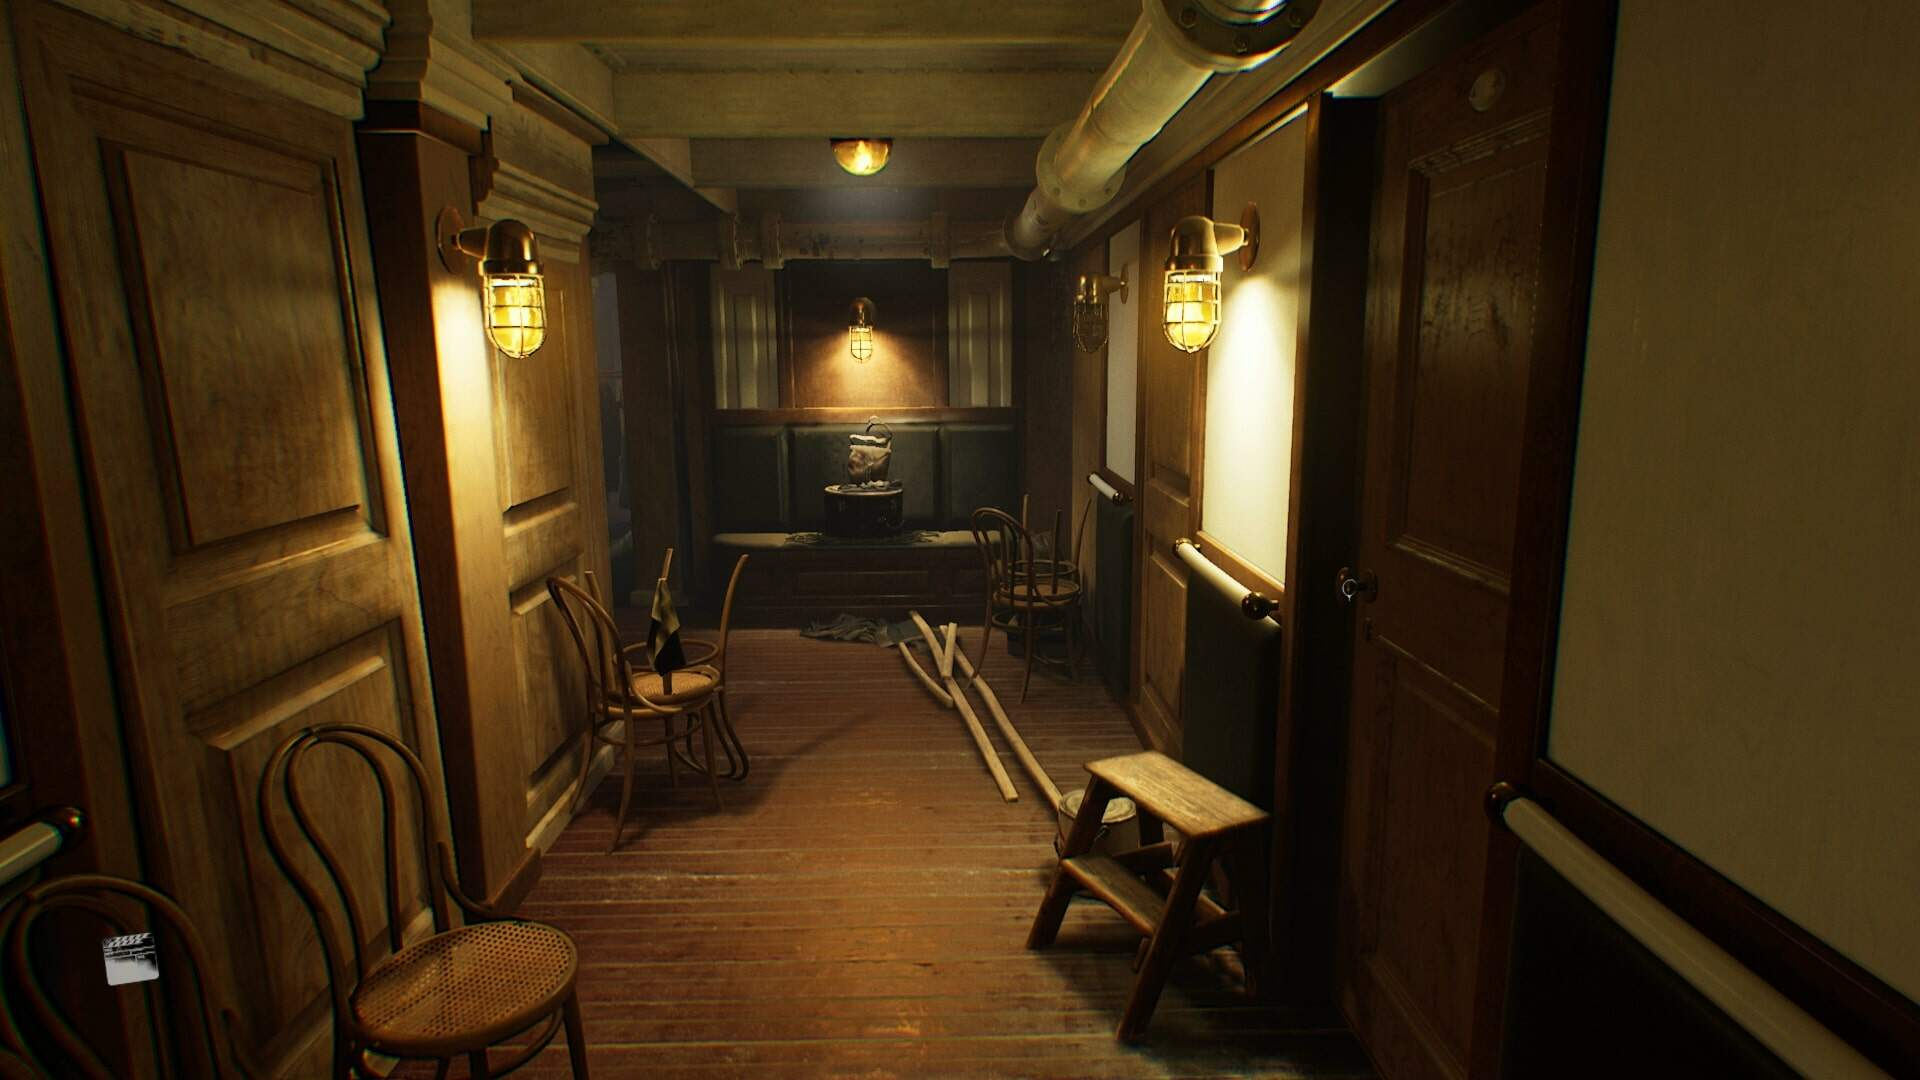 Layers of Fear 2 Endings - How to Get the Formless, Flame and Forever Endings